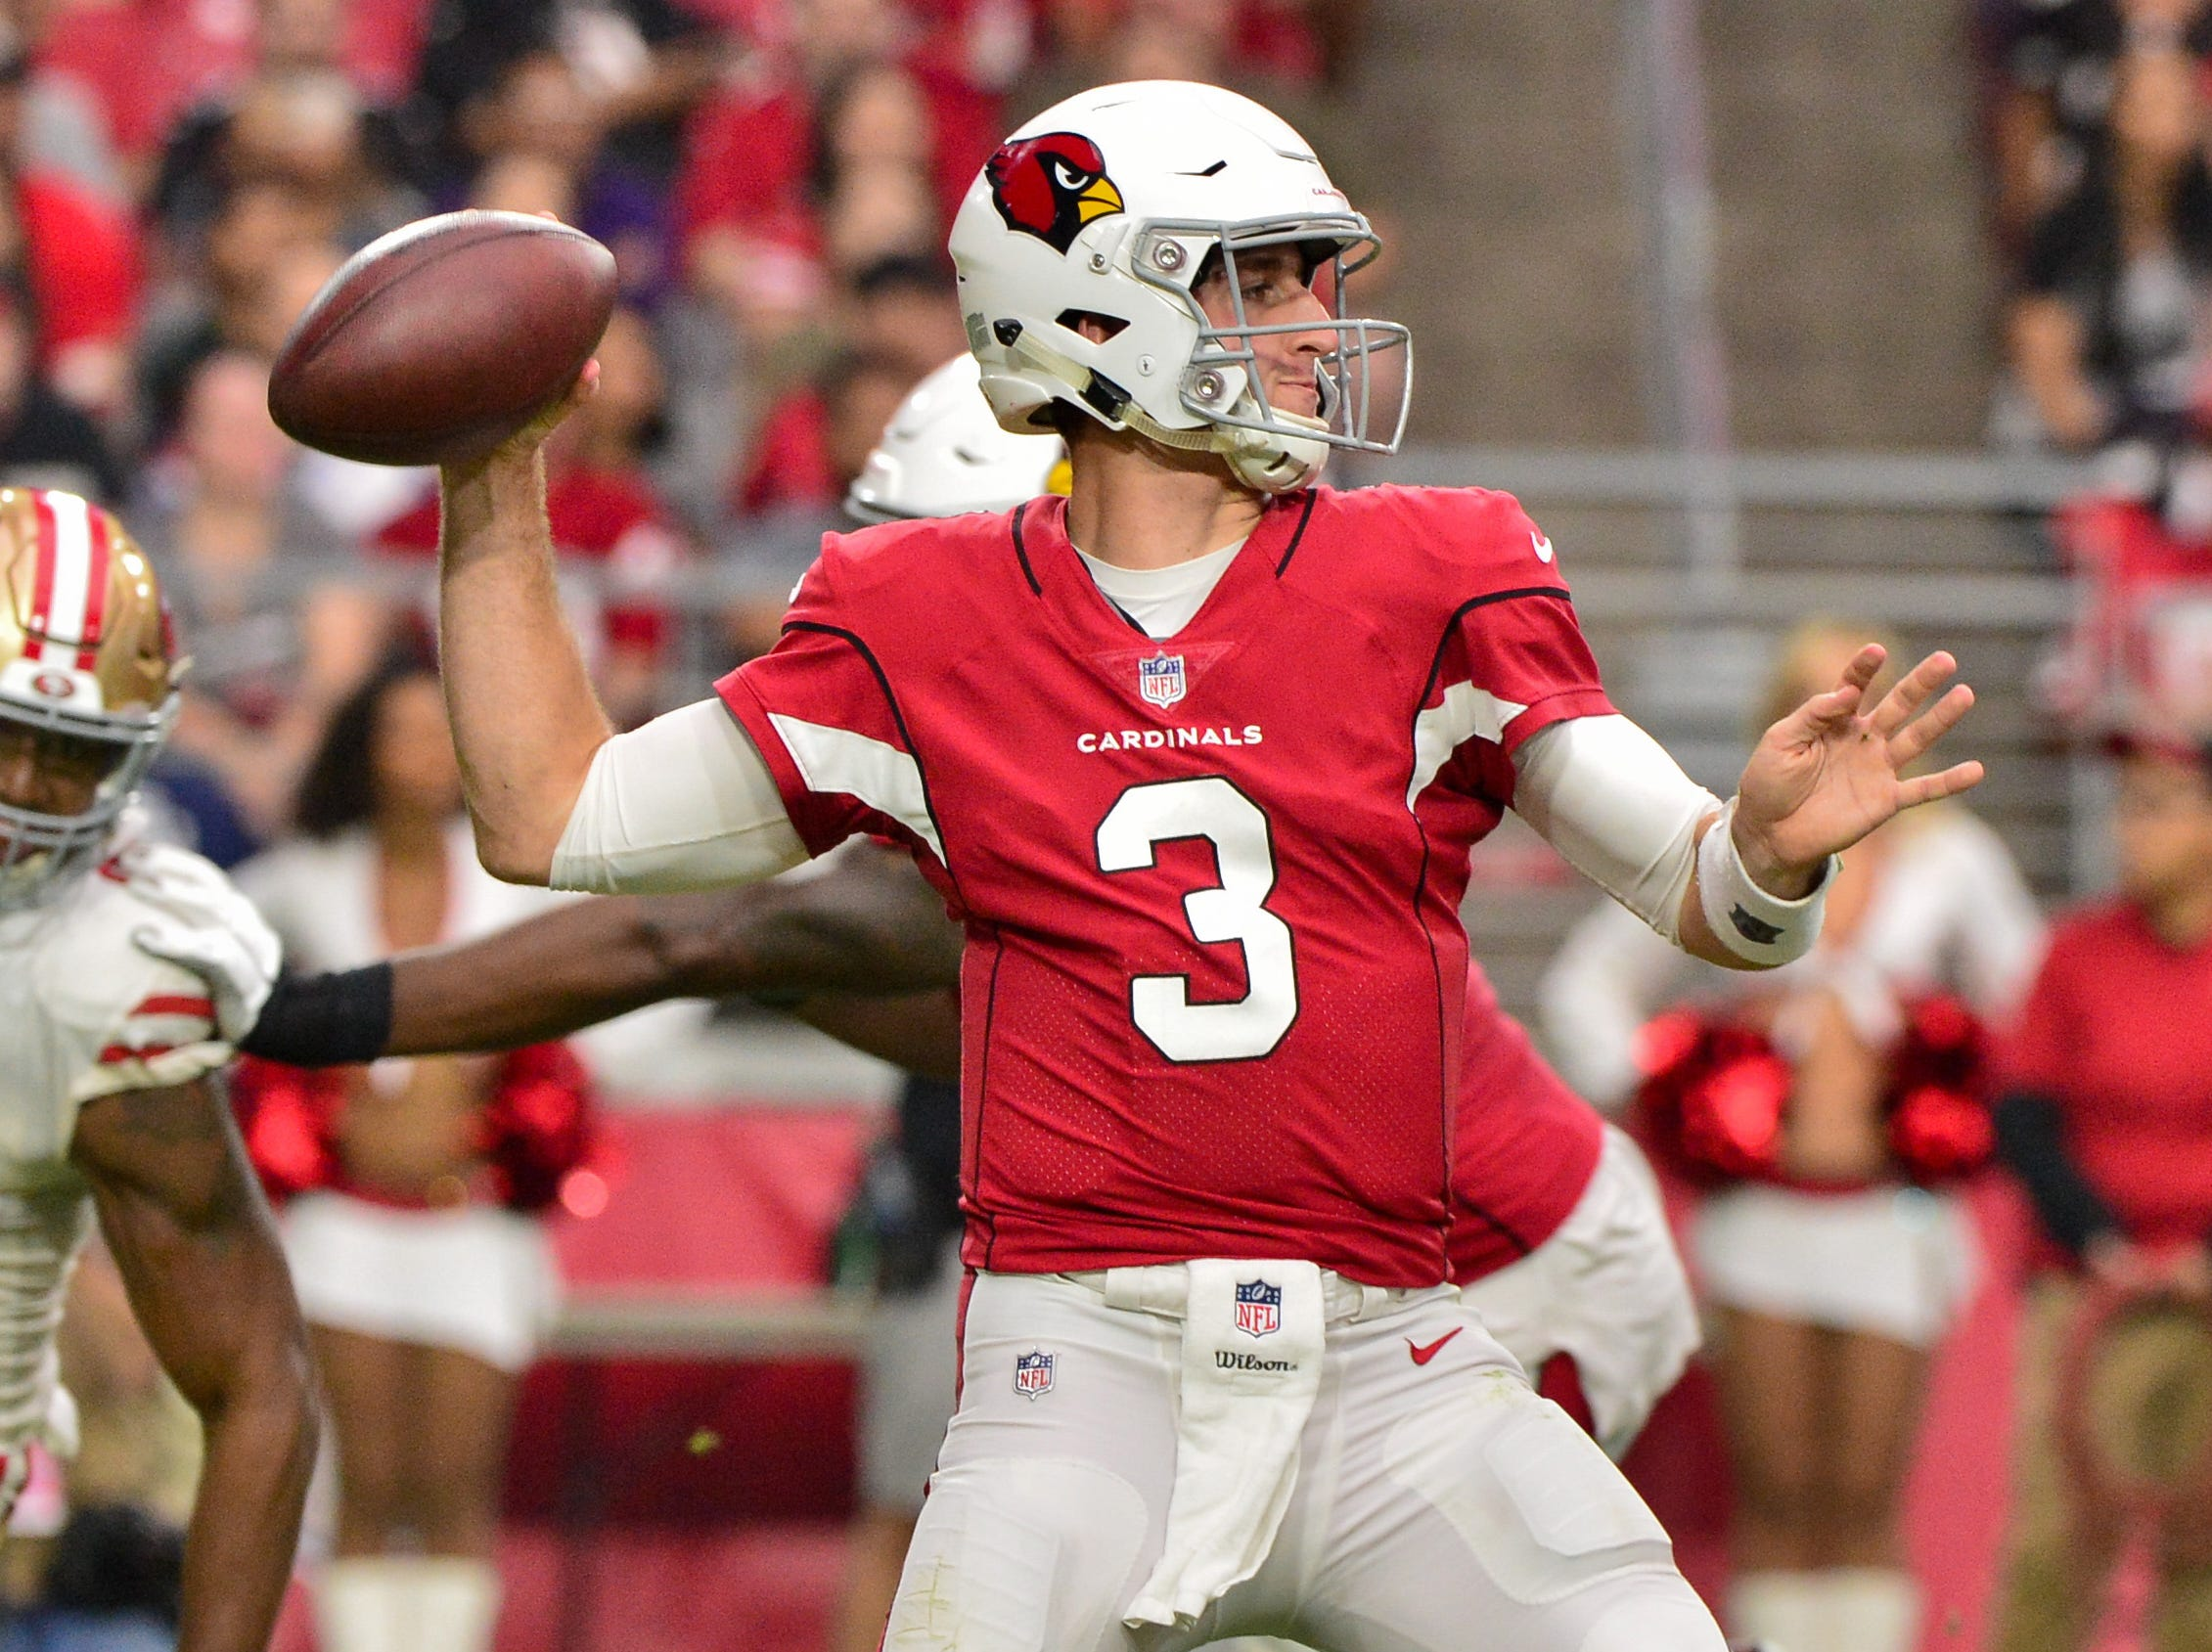 Oct 28, 2018; Glendale, AZ, USA; Arizona Cardinals quarterback Josh Rosen (3) throws and interception during the first half against the San Francisco 49ers at State Farm Stadium.